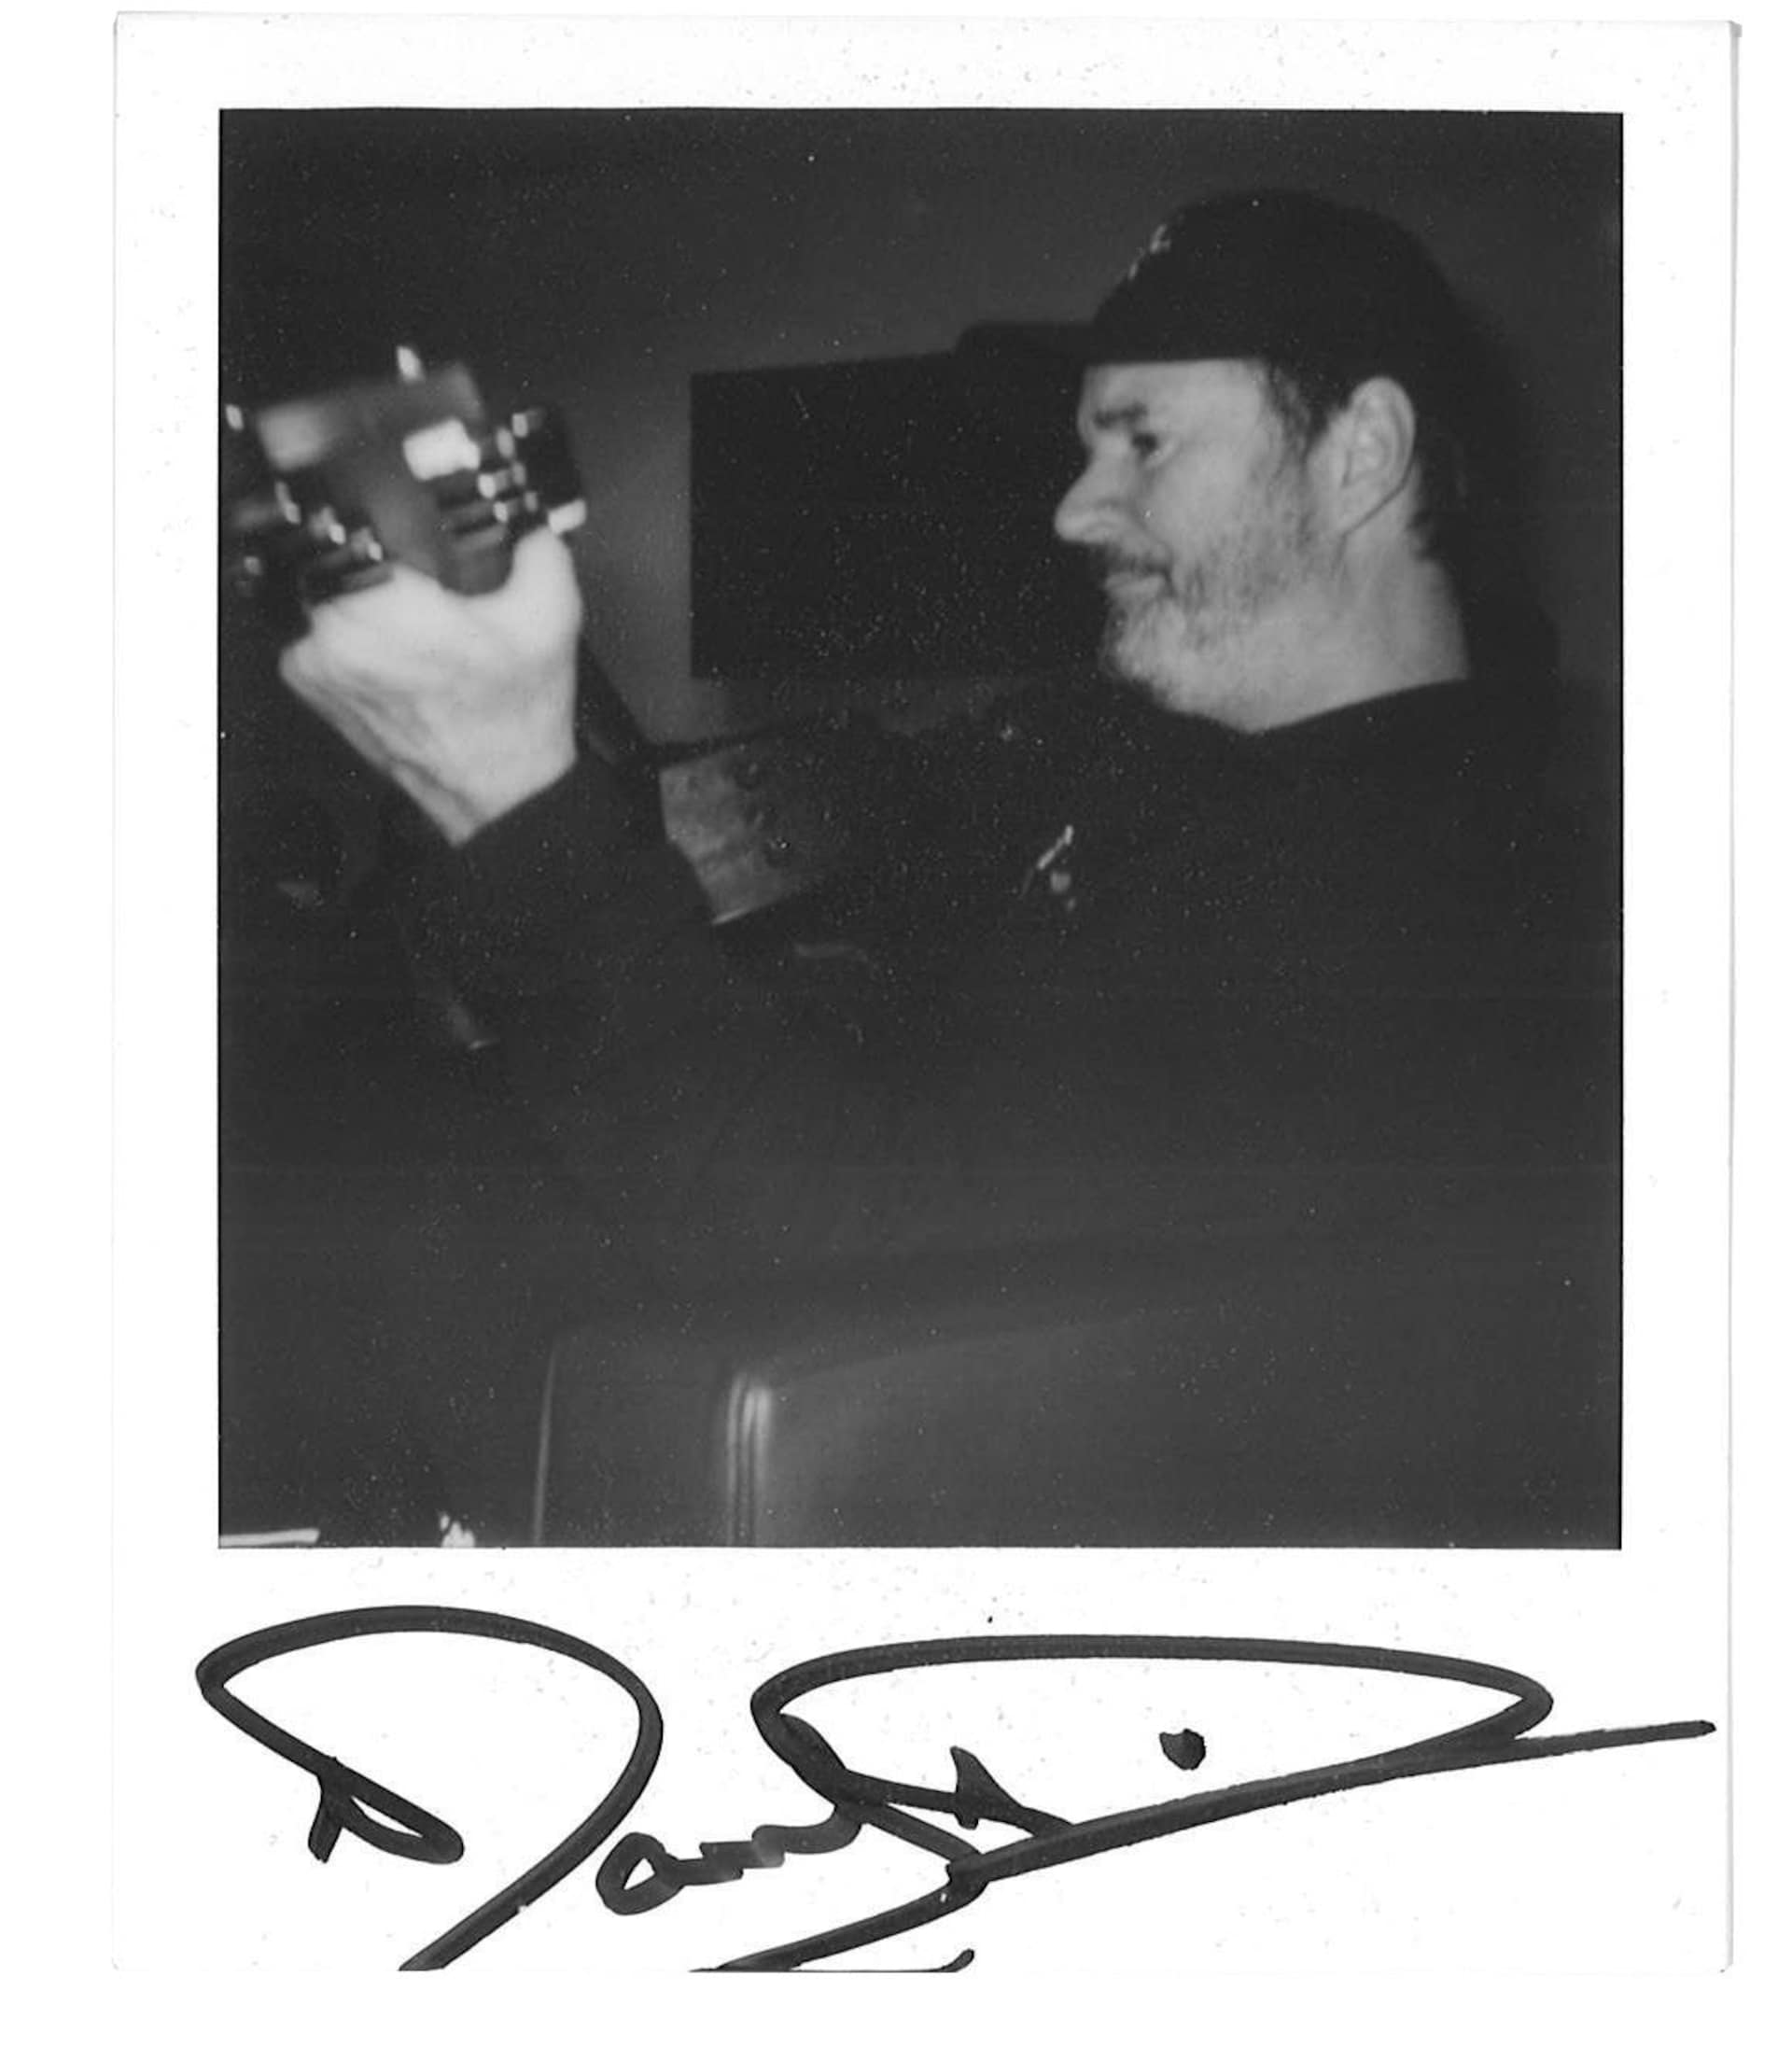 Photo polaroid d'une guitare autographiée par Paul Piché